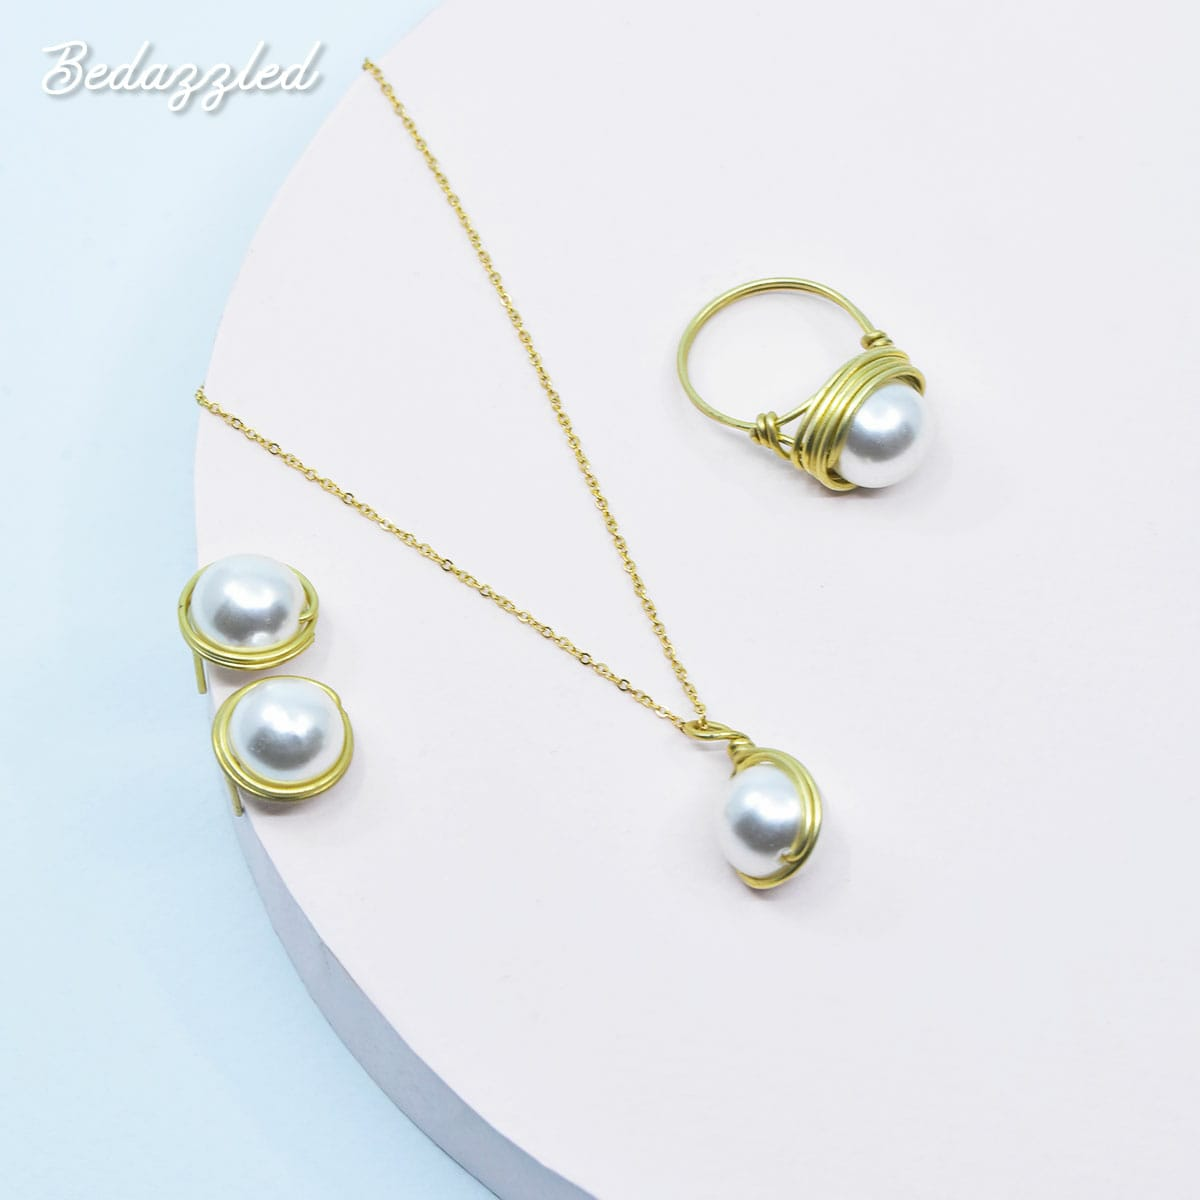 Bedazzling Pearl - Set of 3